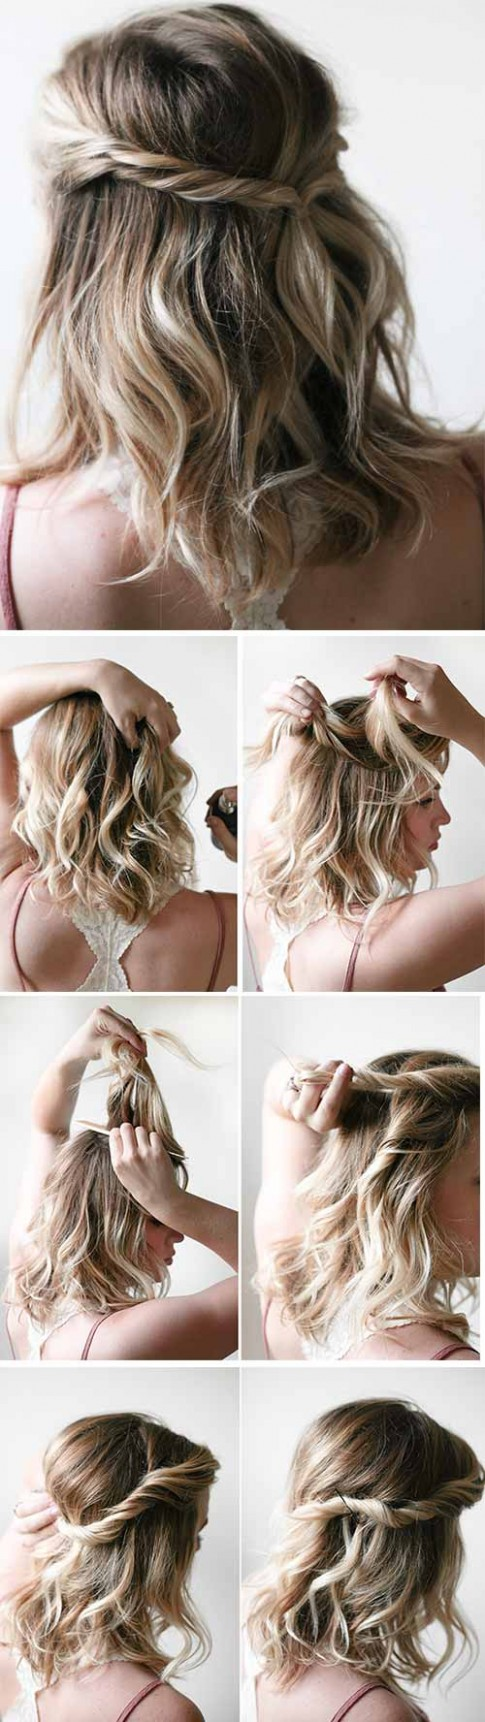 9 Incredible DIY Short Hairstyles A Step By Step Guide Cute Hairstyles For Short Straight Hair